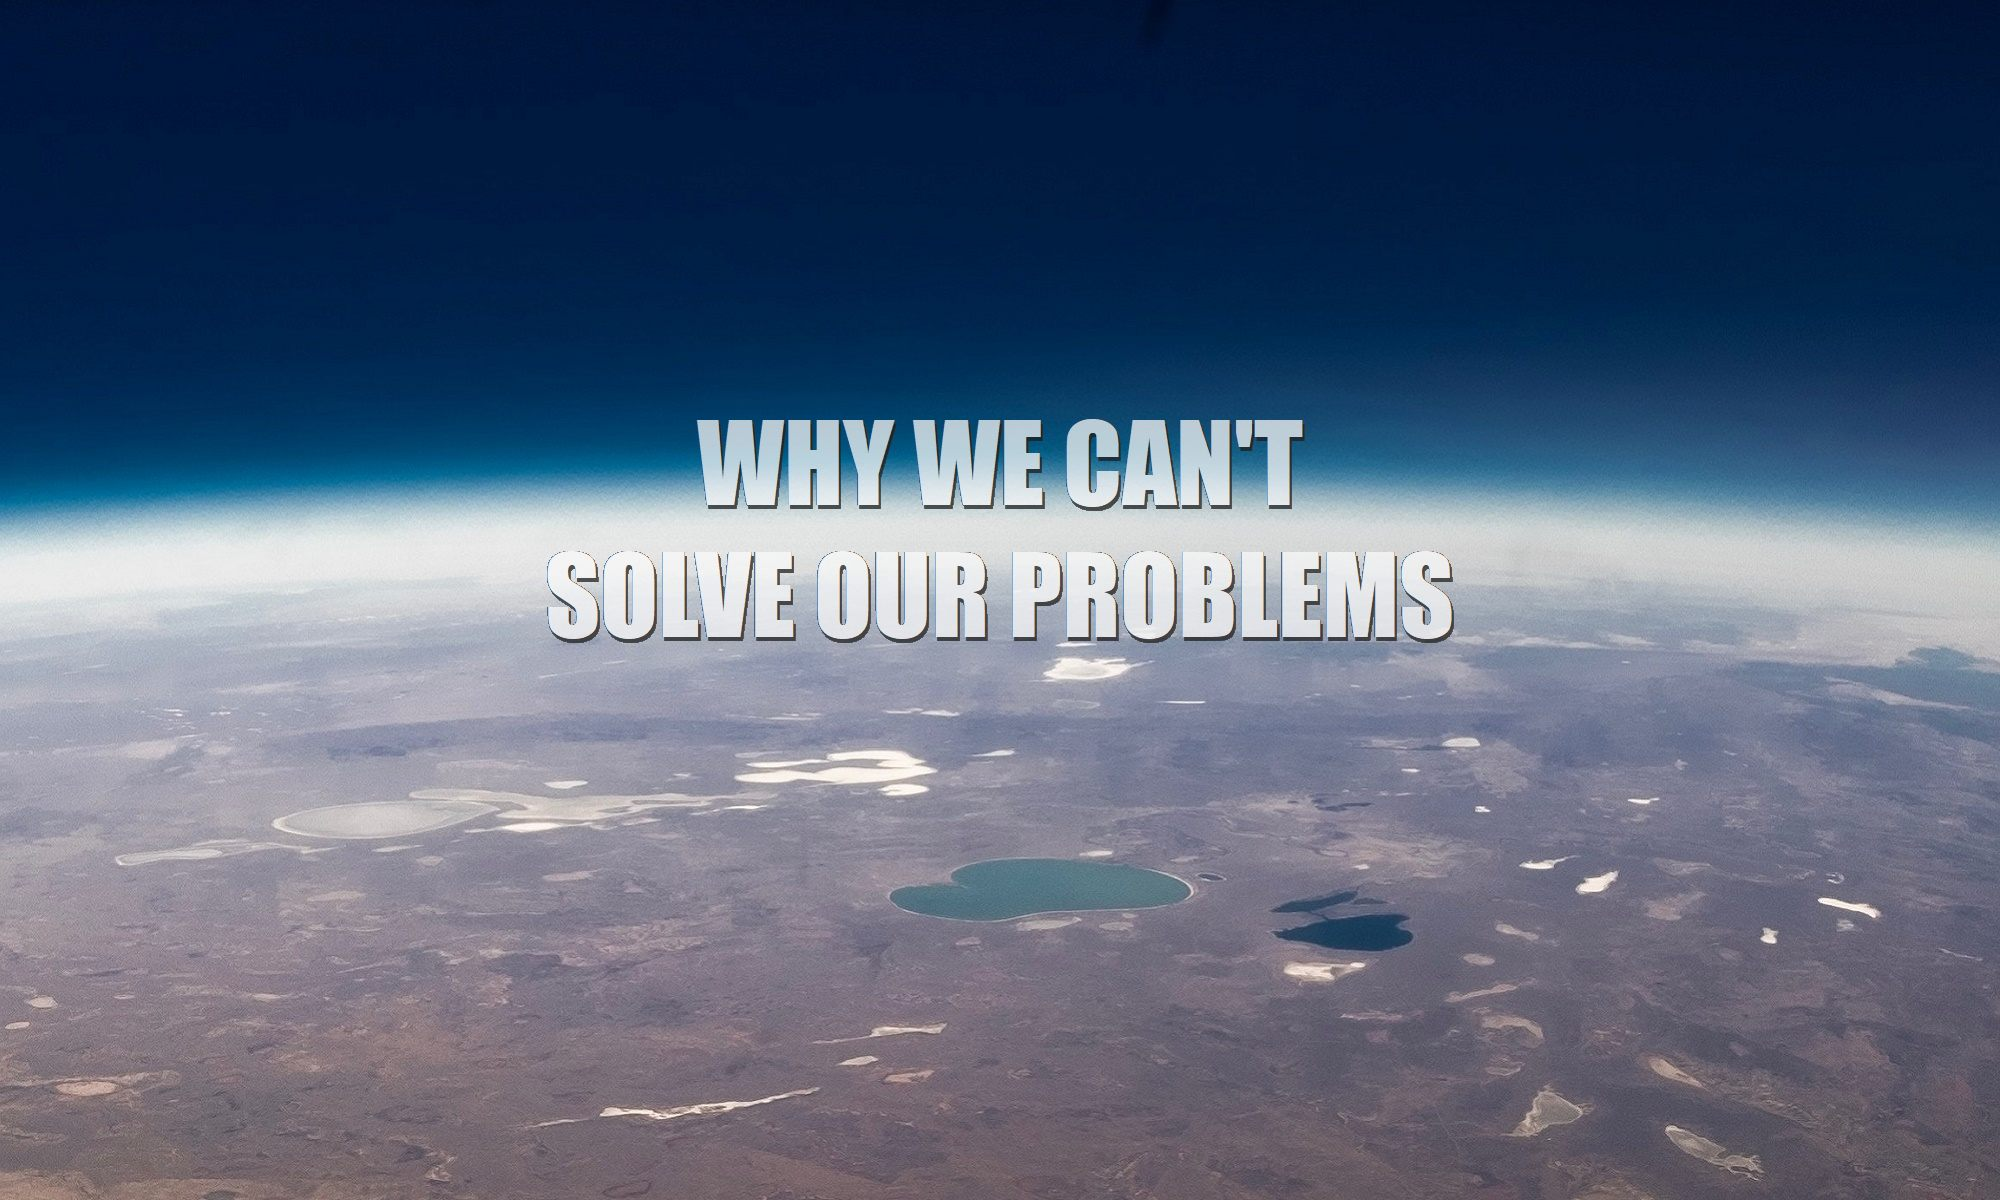 Why-we-can't-solve-our-problems-2-2000